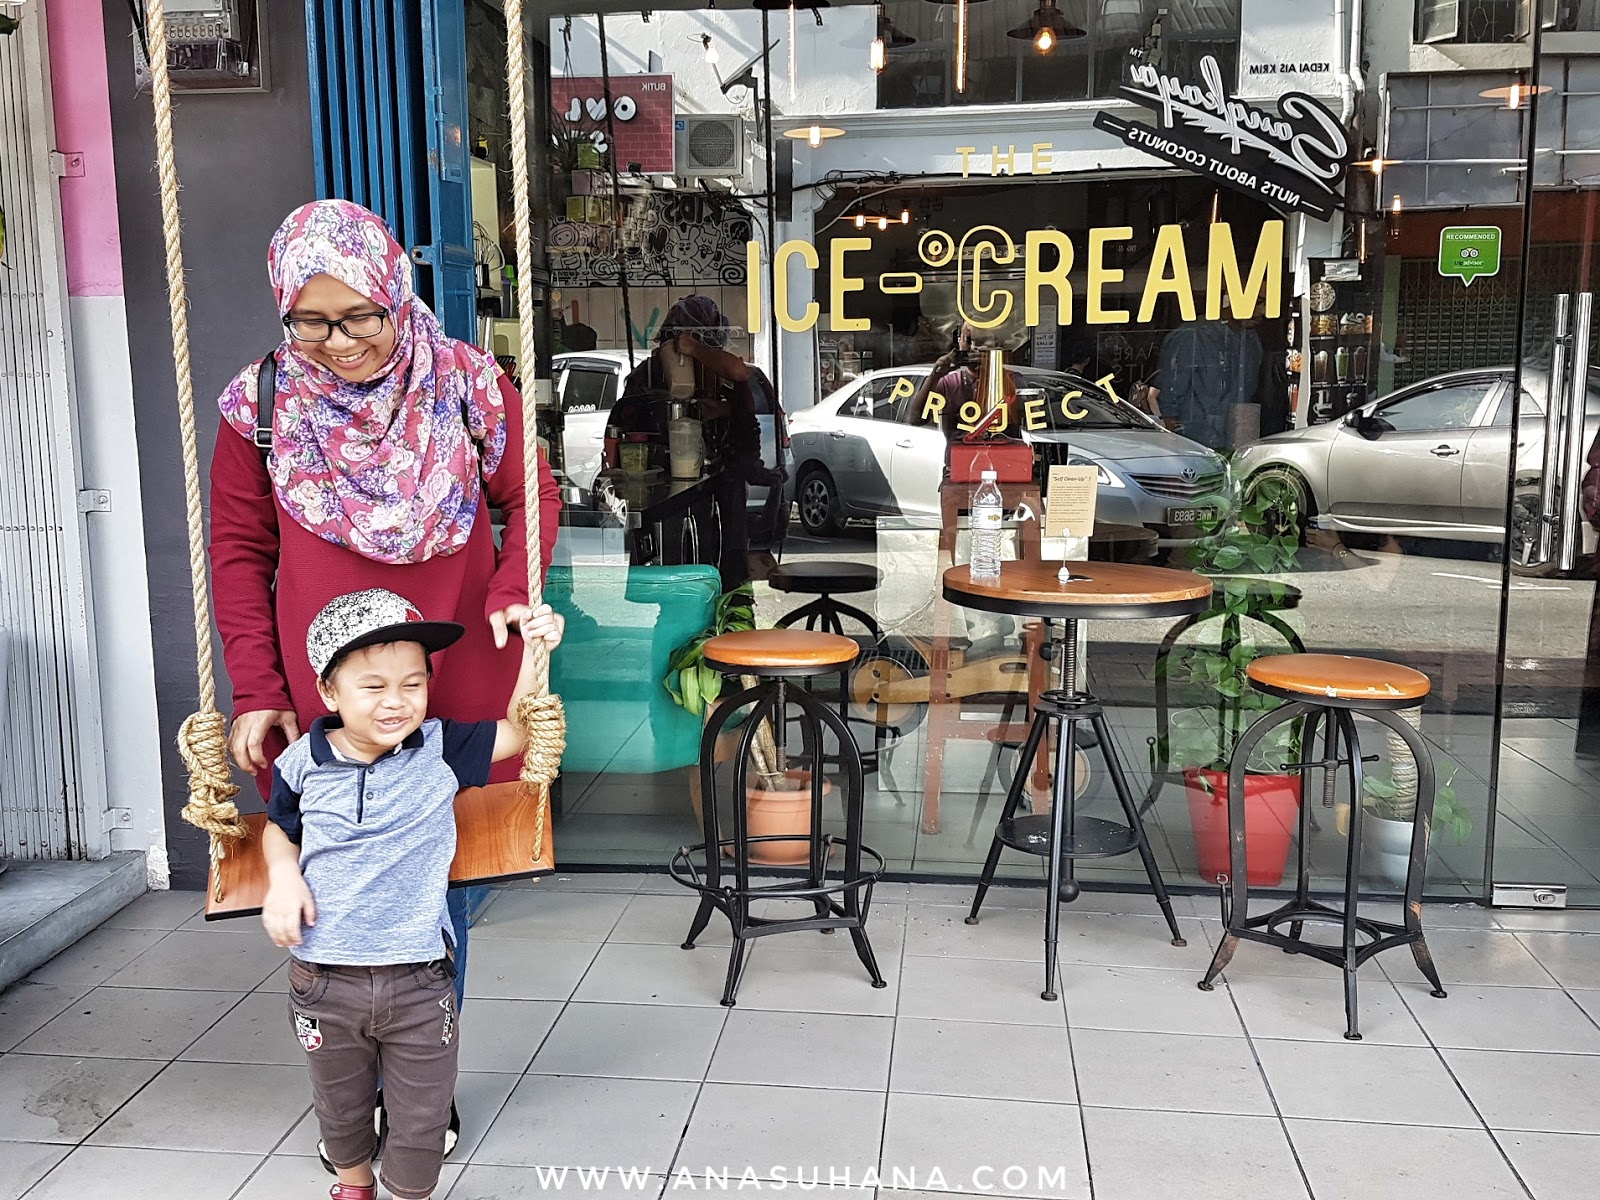 The Ice-cream Project (TIP) Johor Bahru - The Best Ice-cream Ever